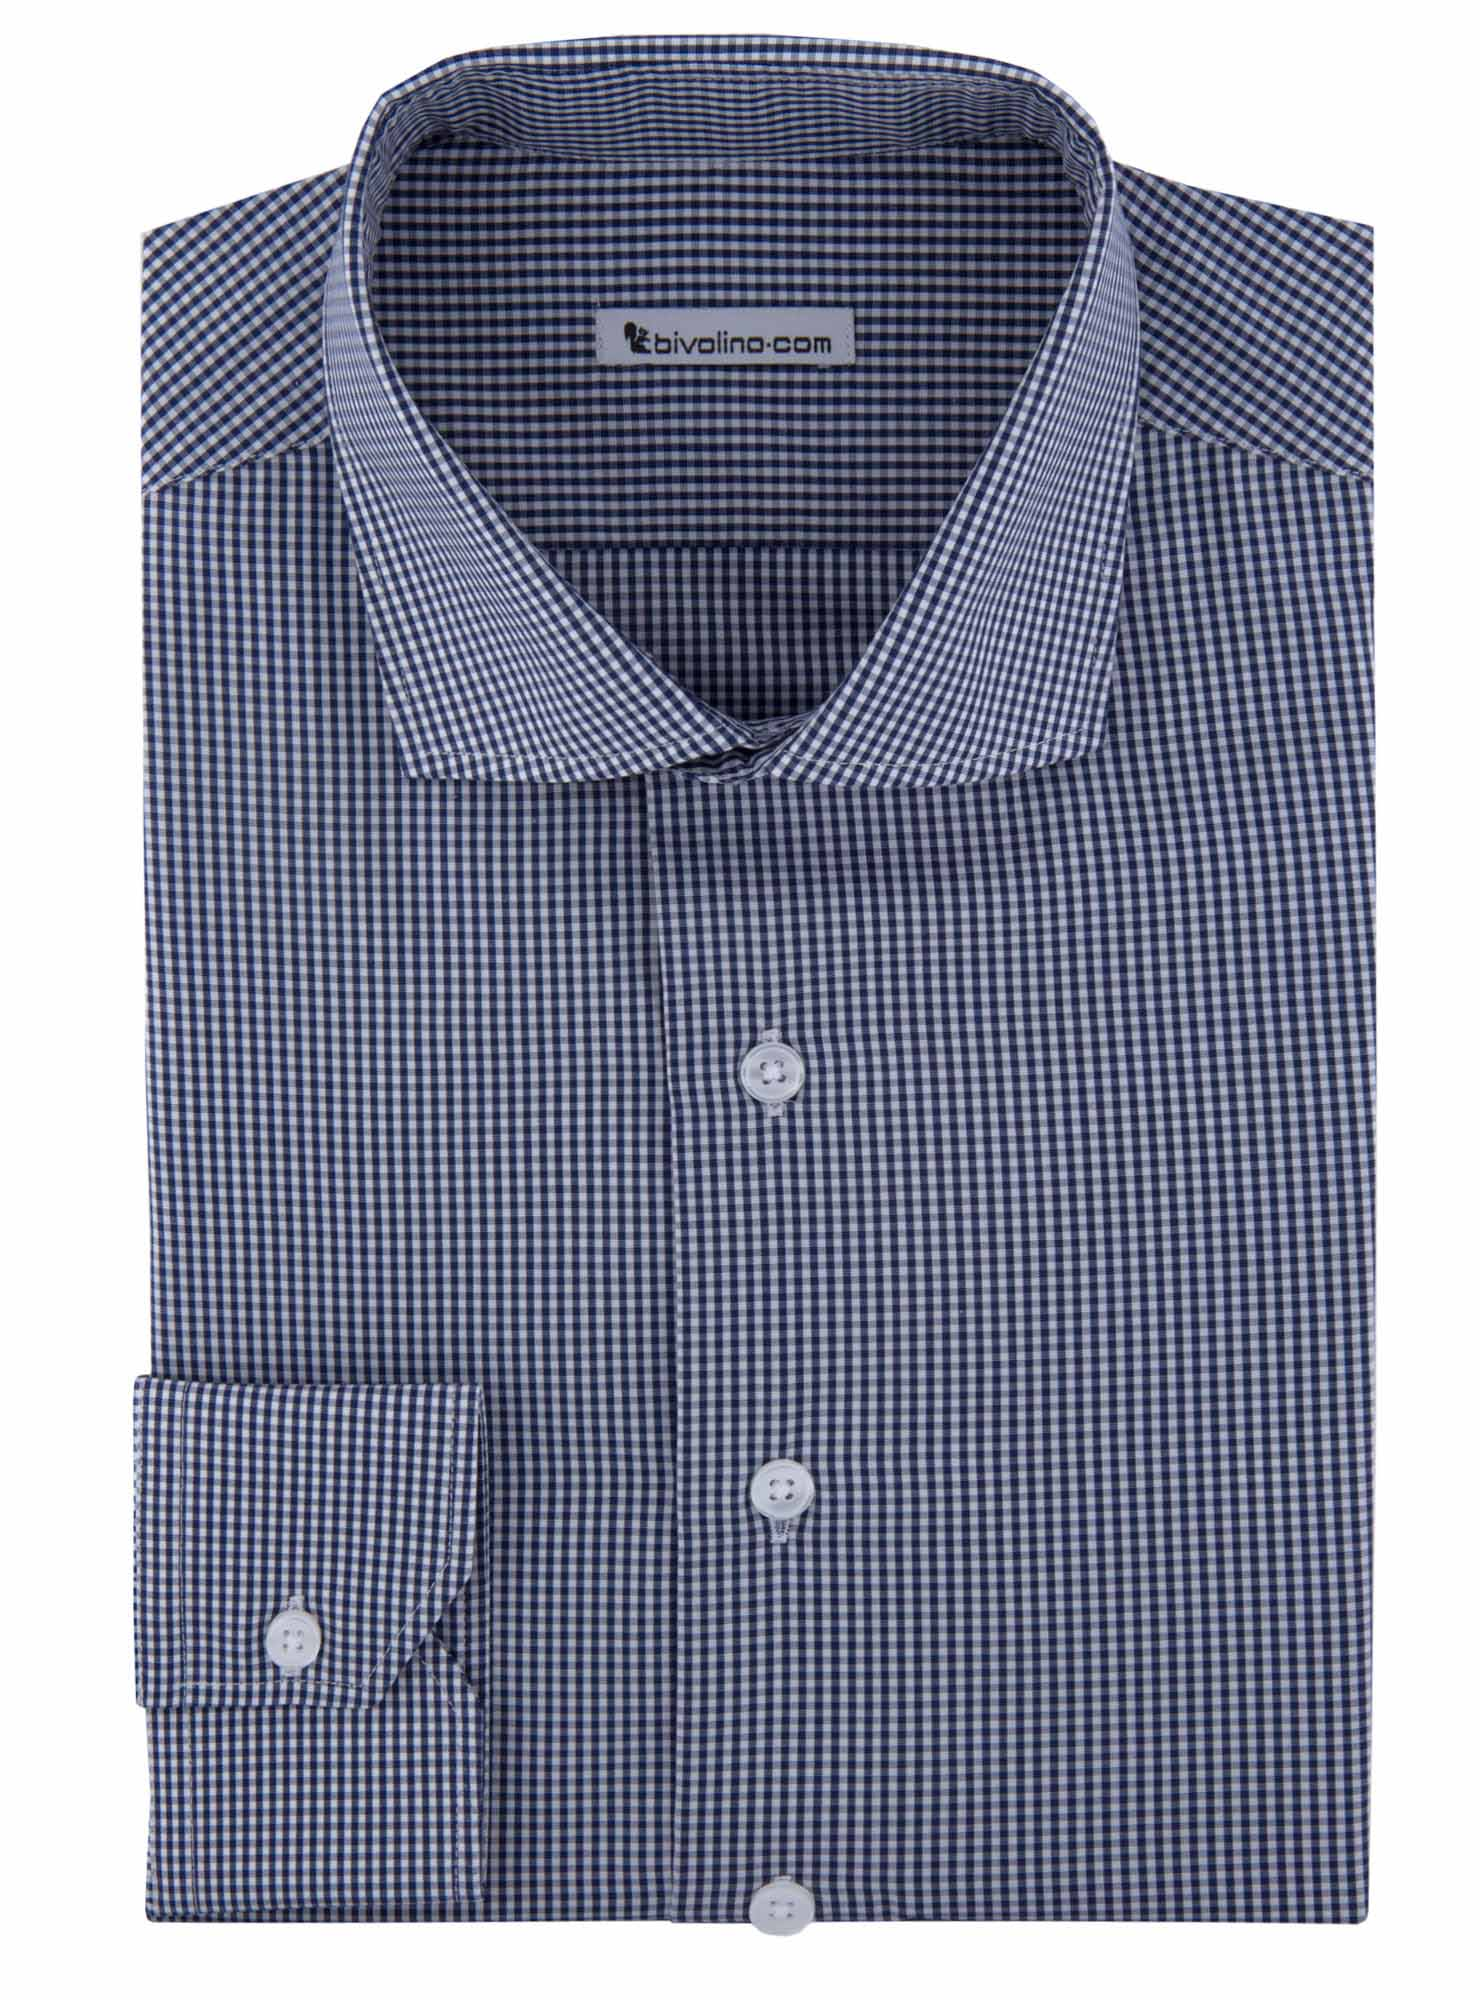 Breno - Poplin navy gingham check shirt - Kento 2